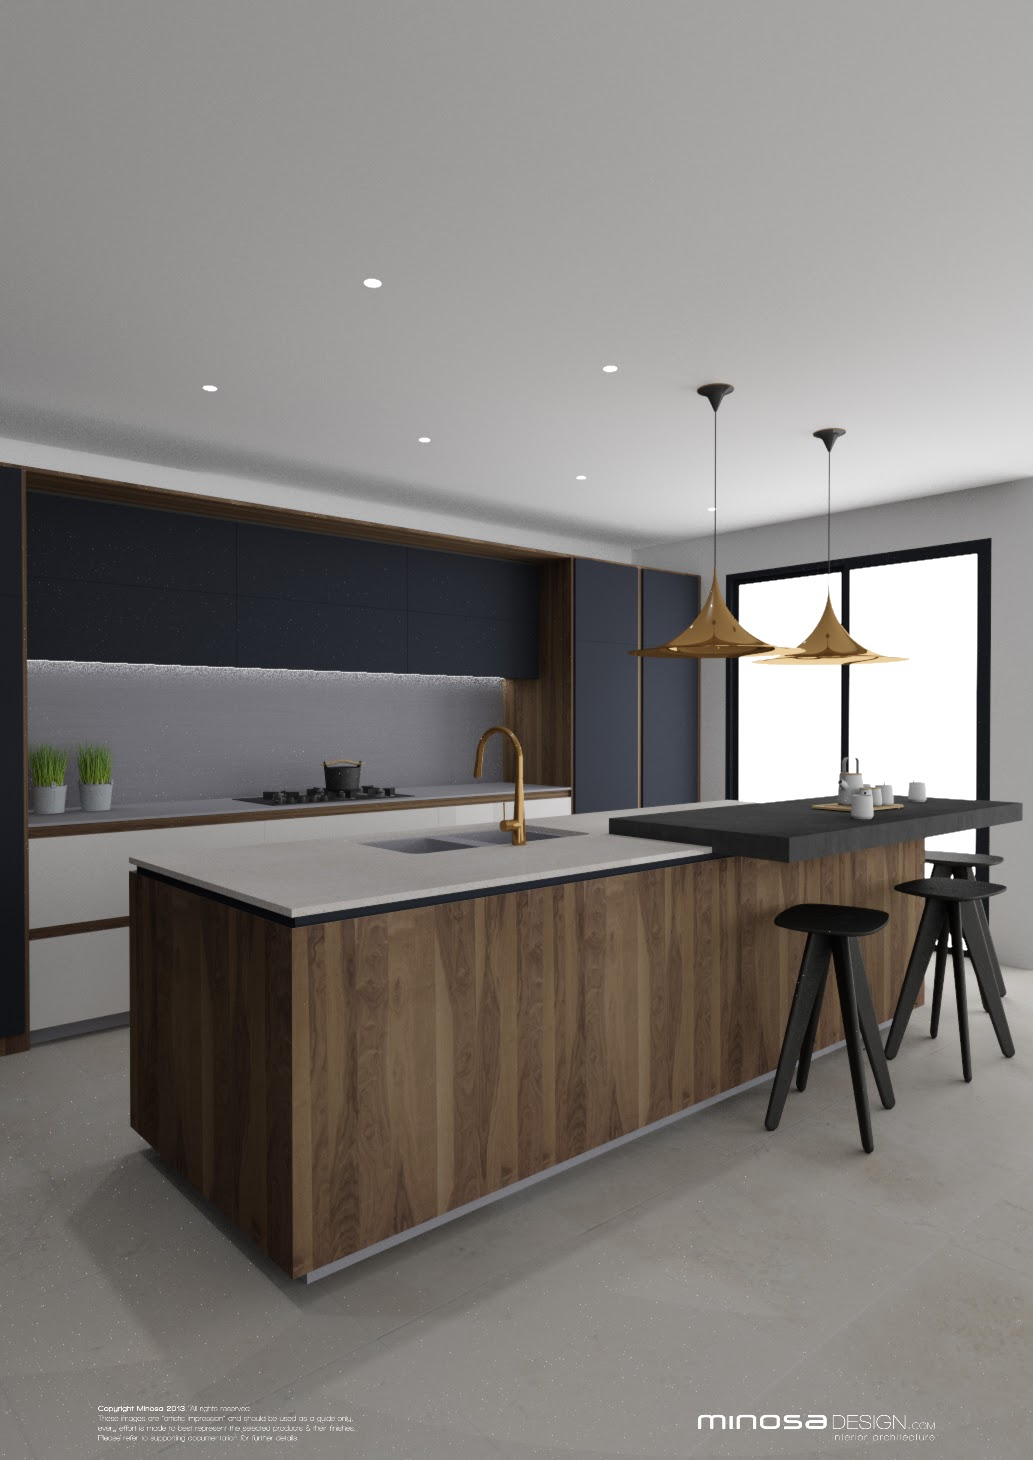 Minosa striking kitchen design with rich wood copper for Pictures of new kitchens designs